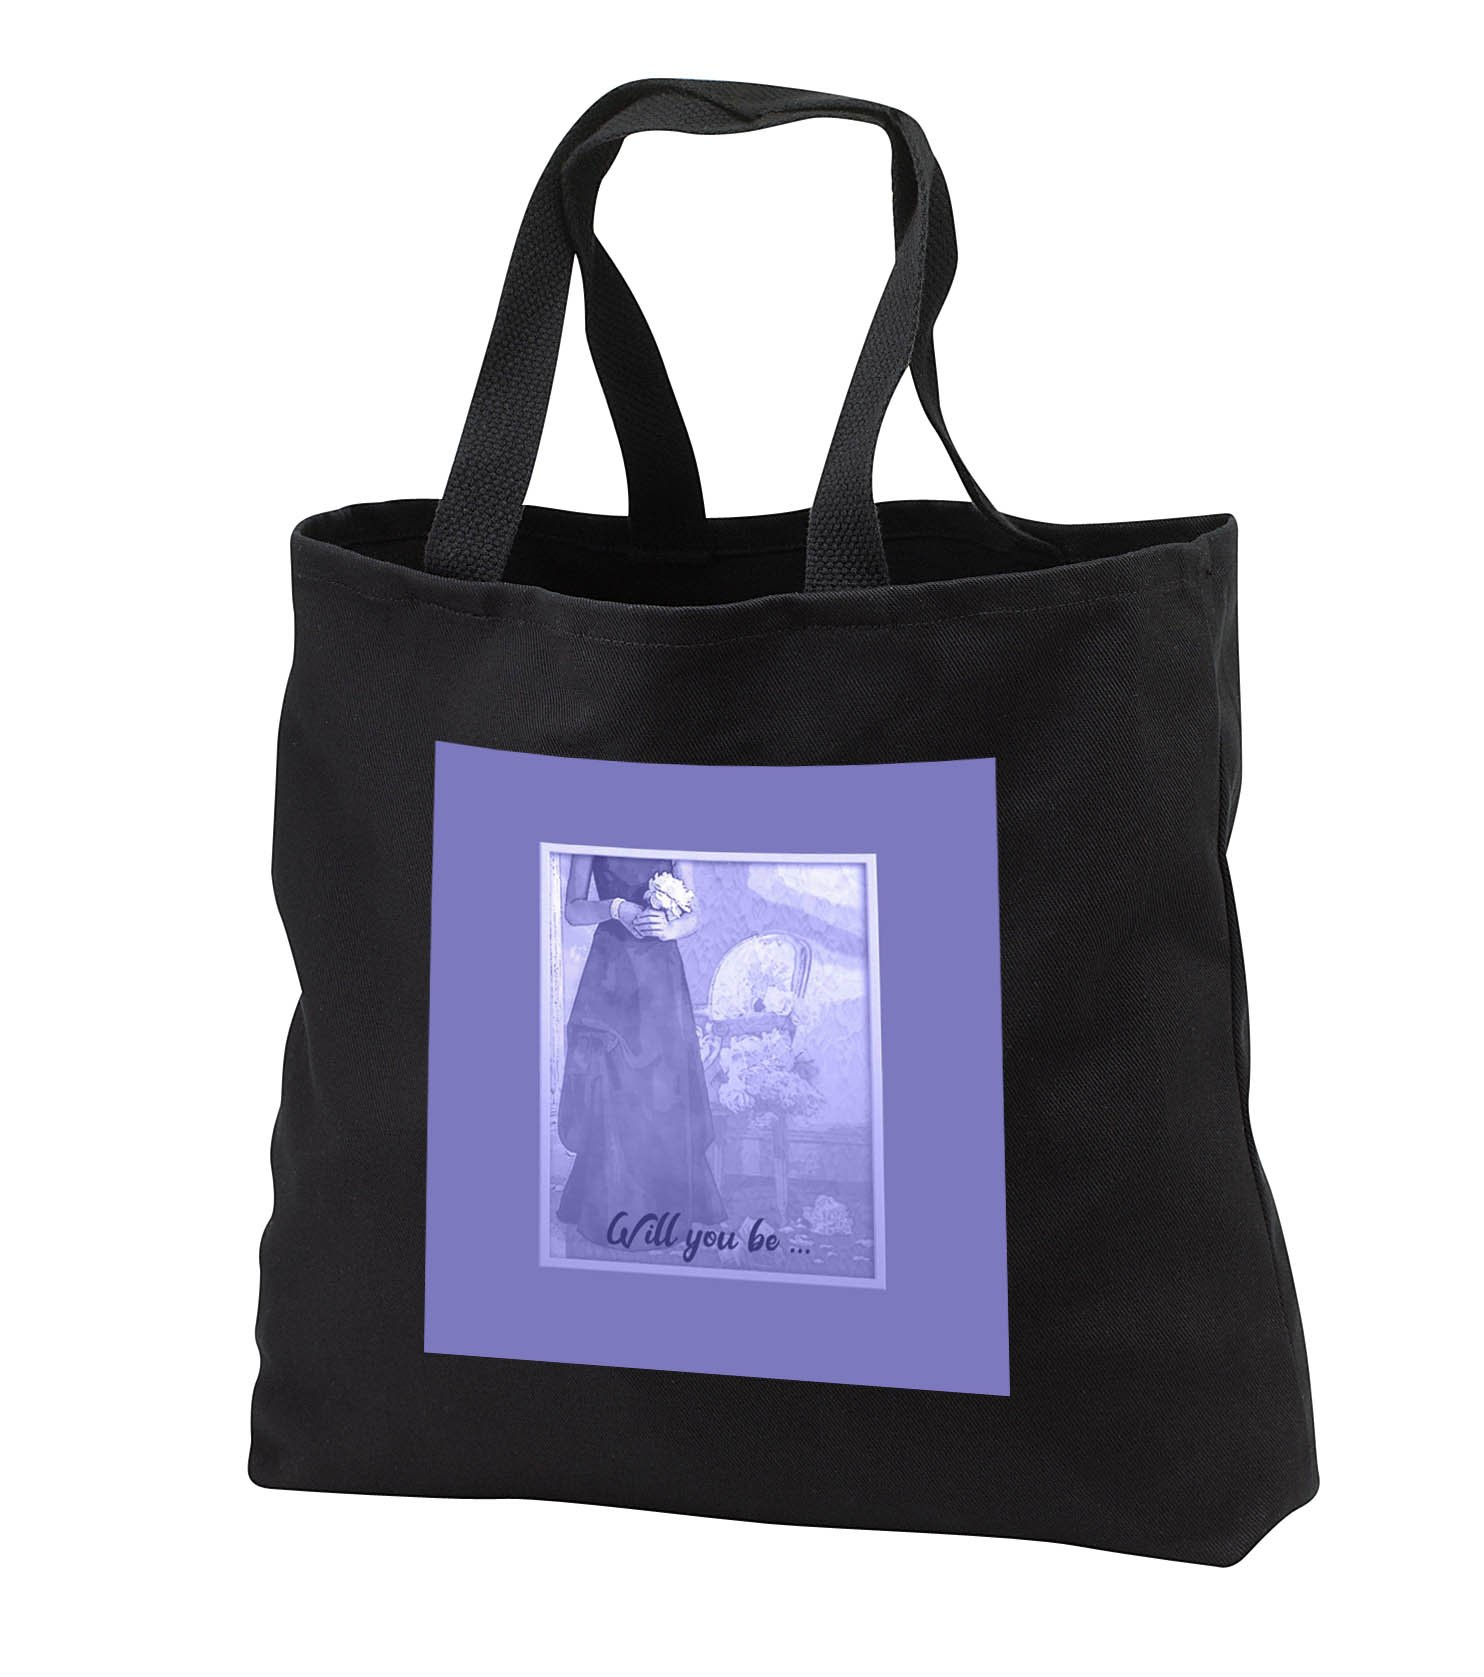 Beverly Turner Wedding Bridal Party Design - Will you be, Lady Holding Bouquet in Lavender Dress, Chair - Tote Bags - Black Tote Bag JUMBO 20w x 15h x 5d (tb_282219_3)